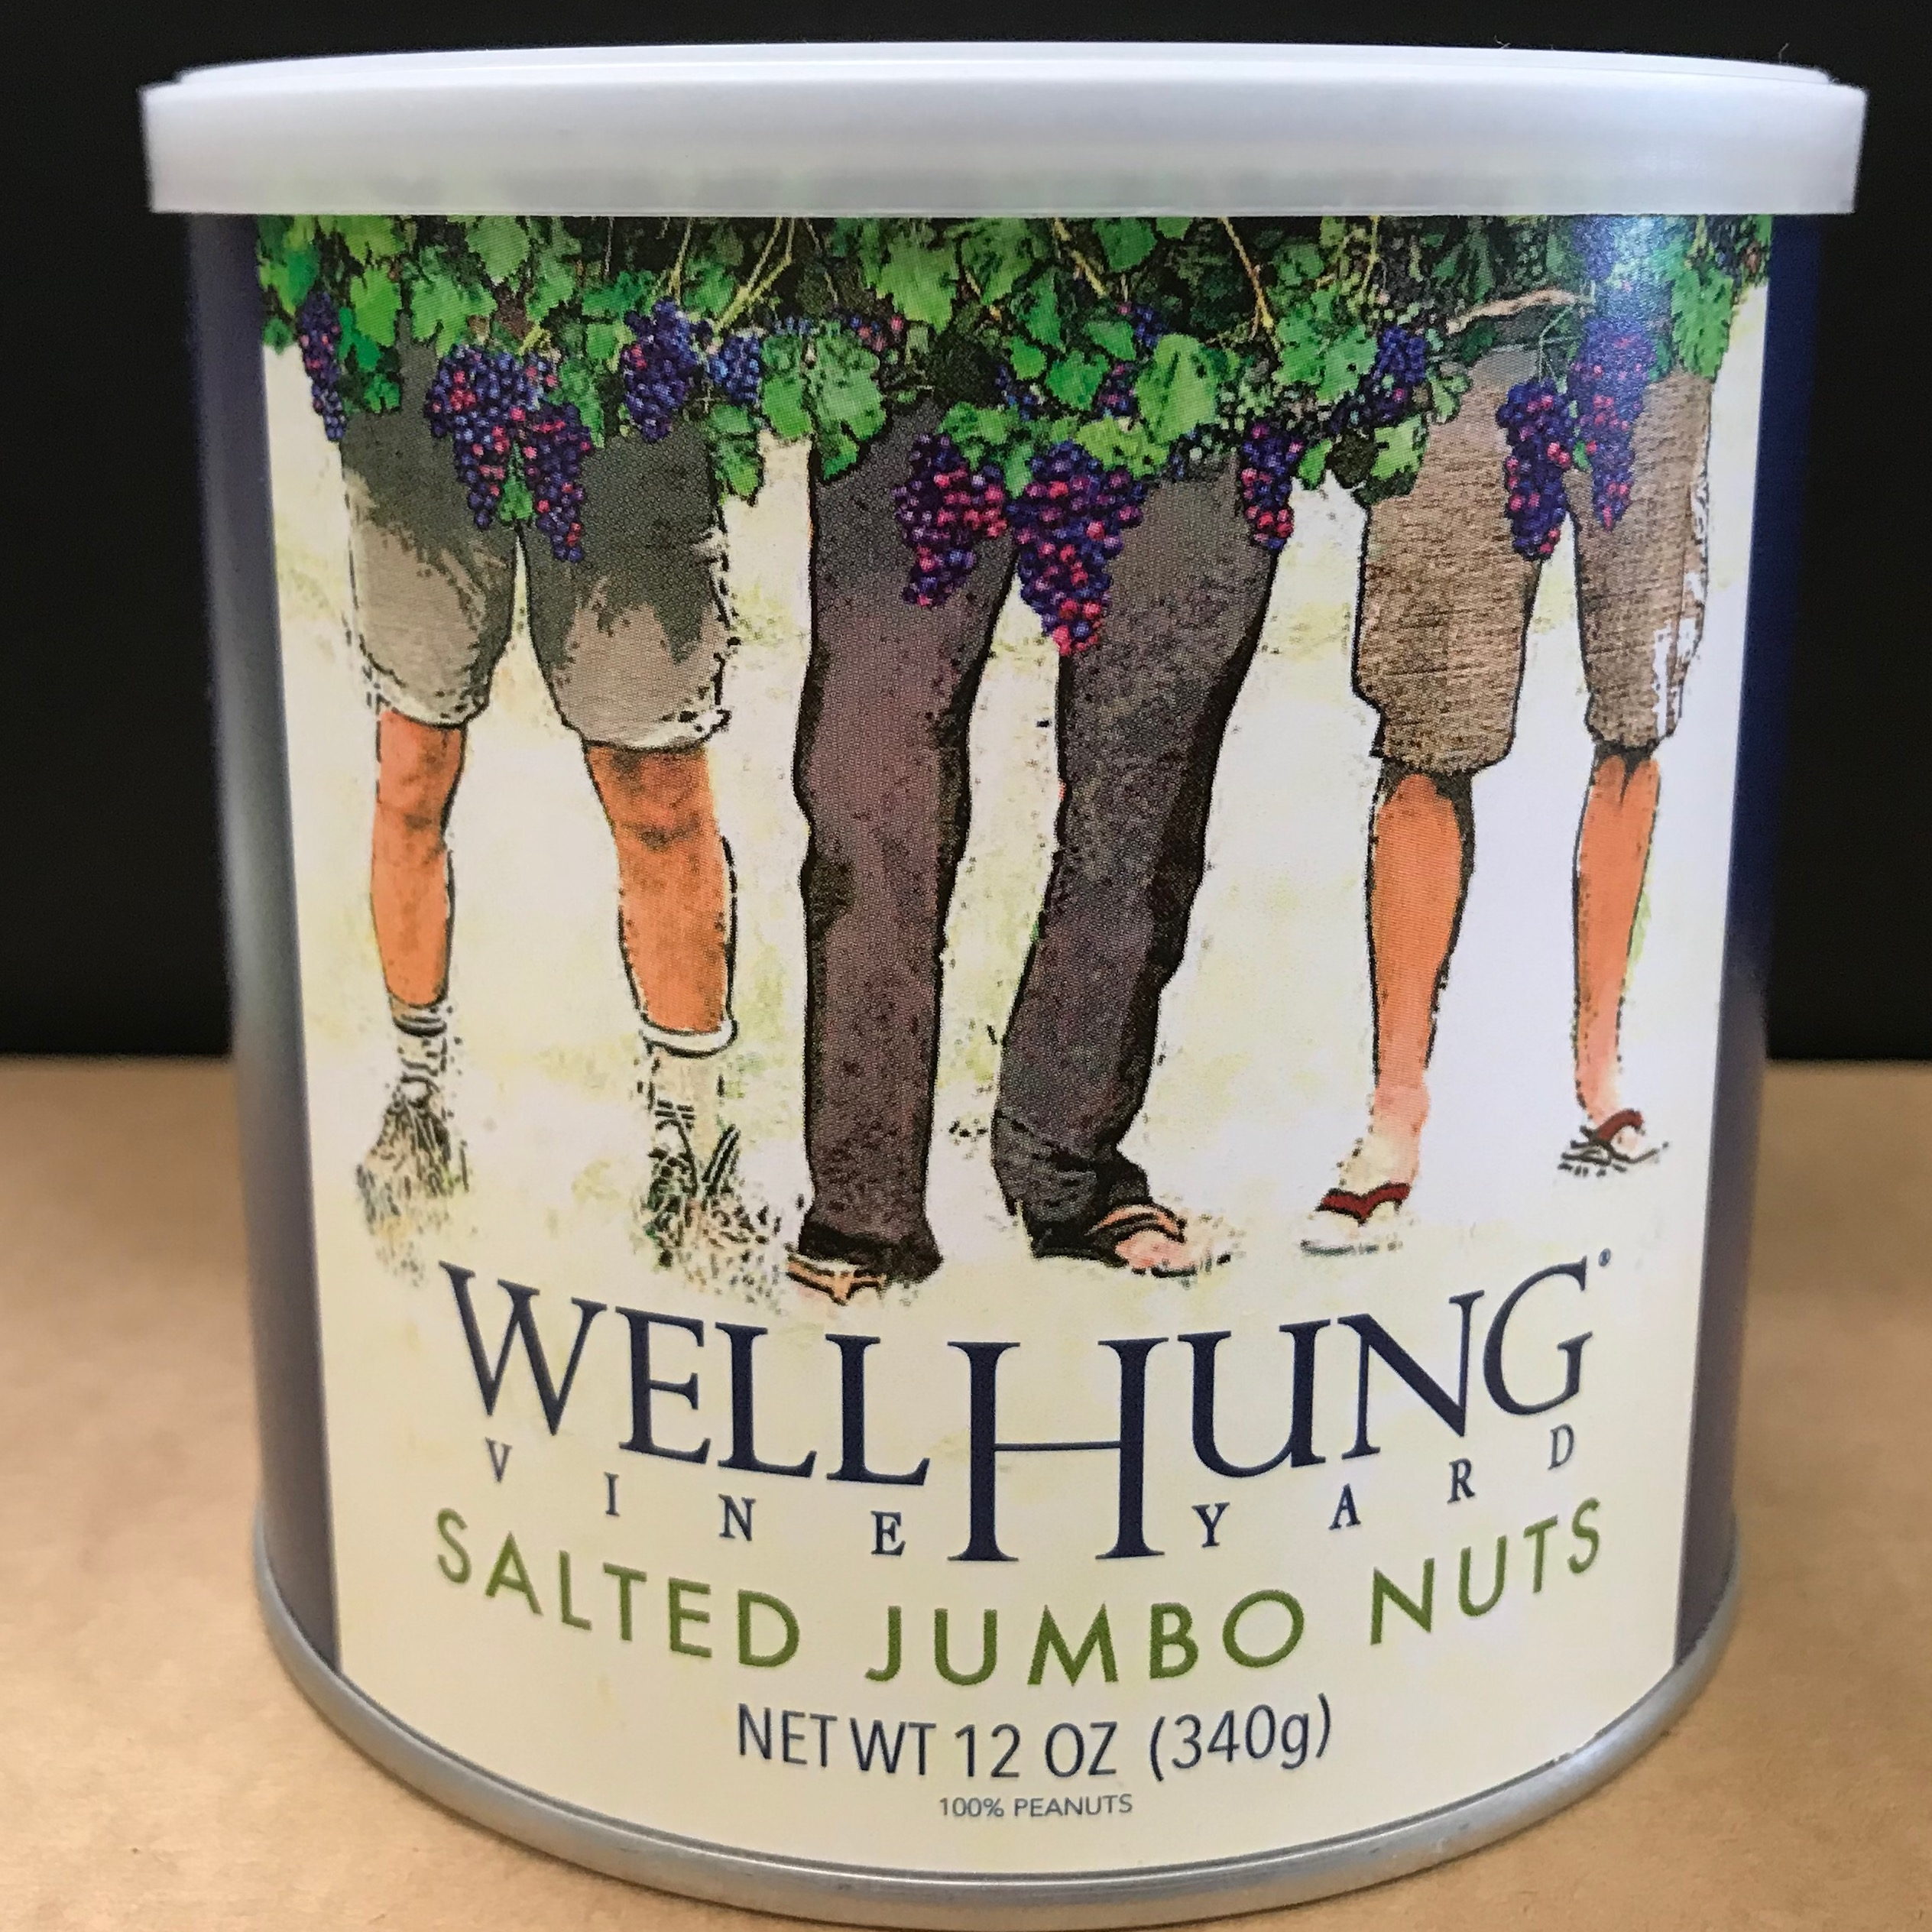 Well Hung Salted Jumbo Peanuts 12 oz